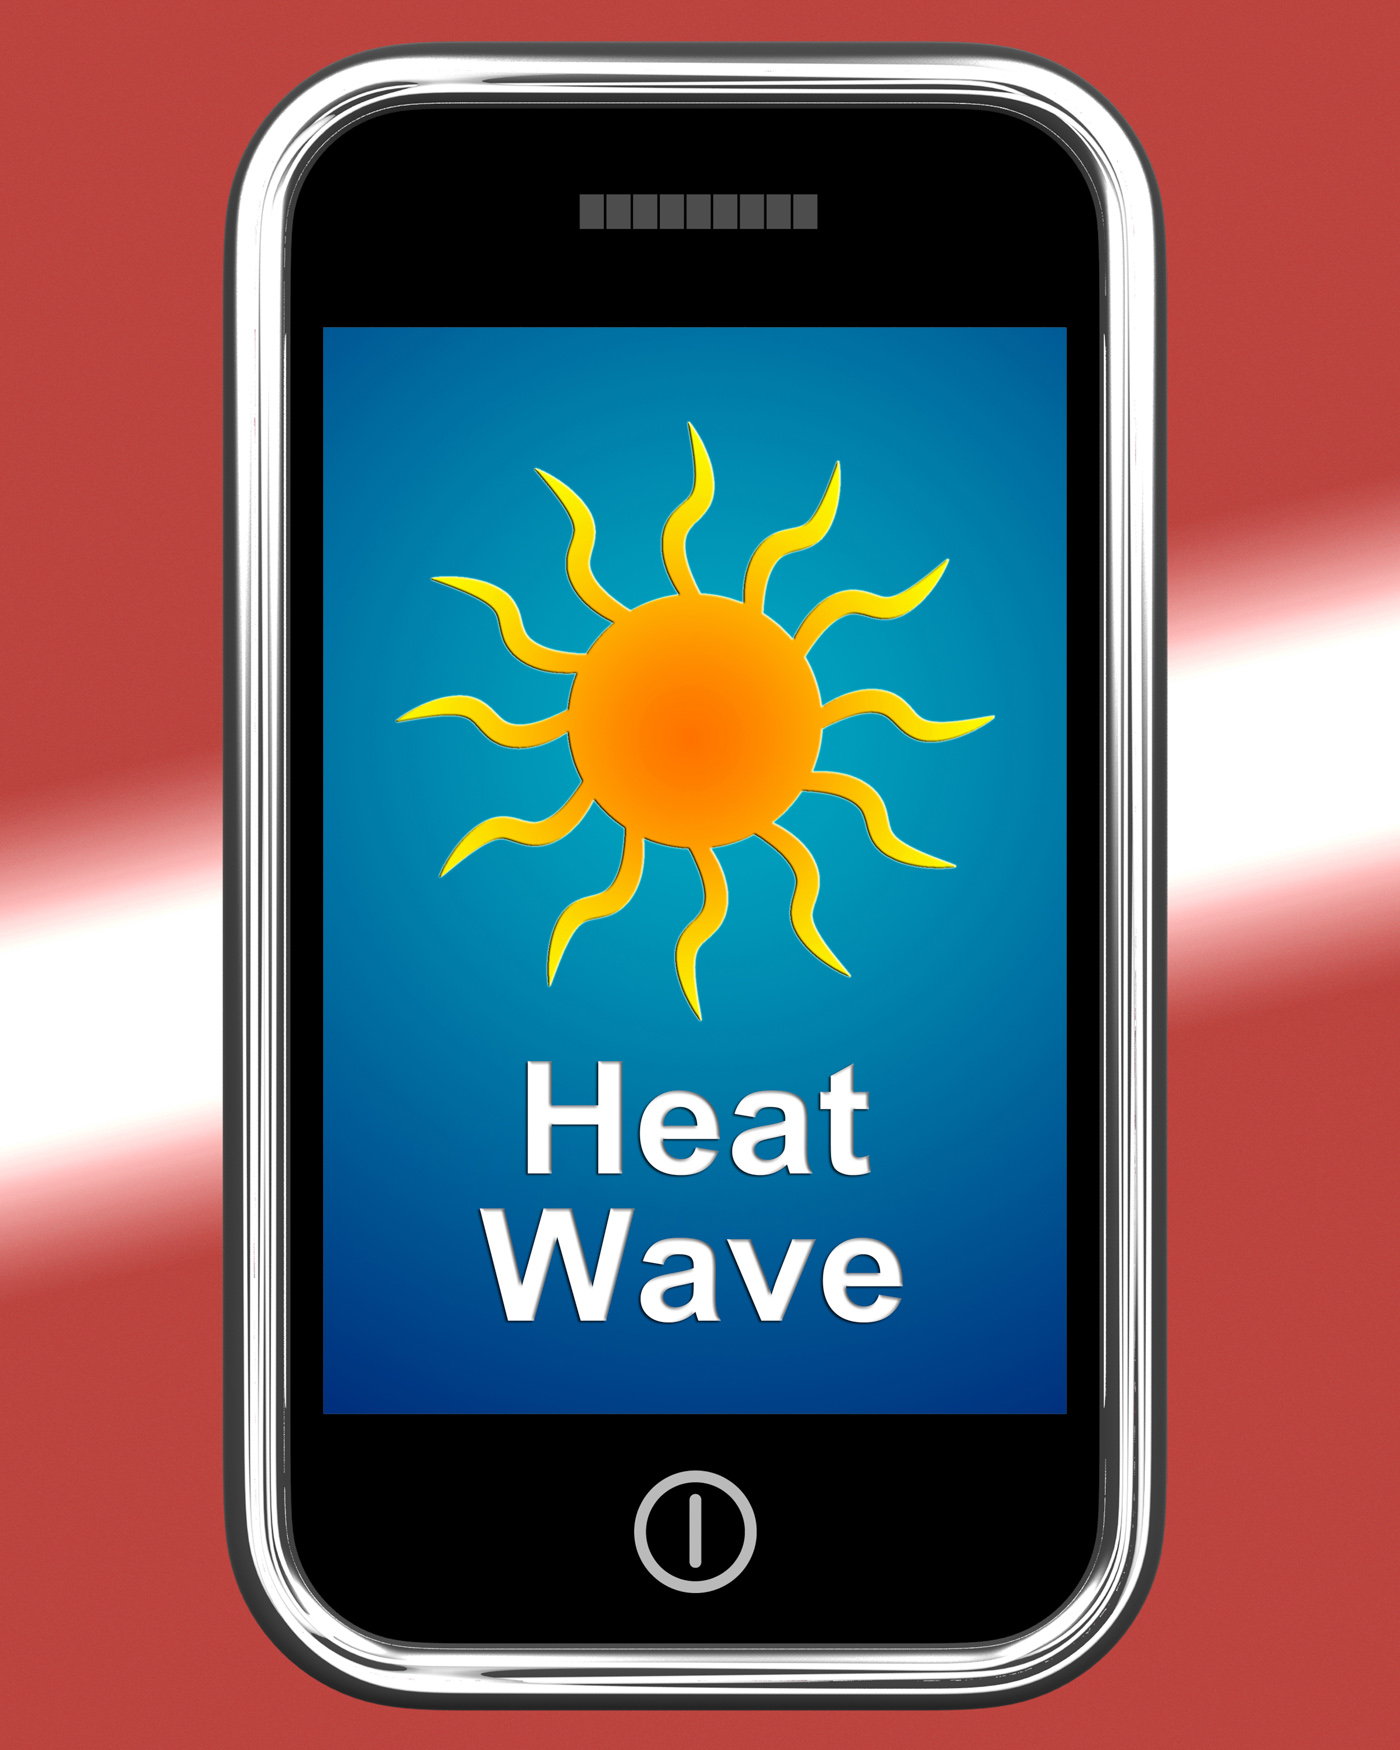 Heat Wave On Phone Means Hot Weather, Cellphone, Scorcher, Weather, Sunshine, HQ Photo